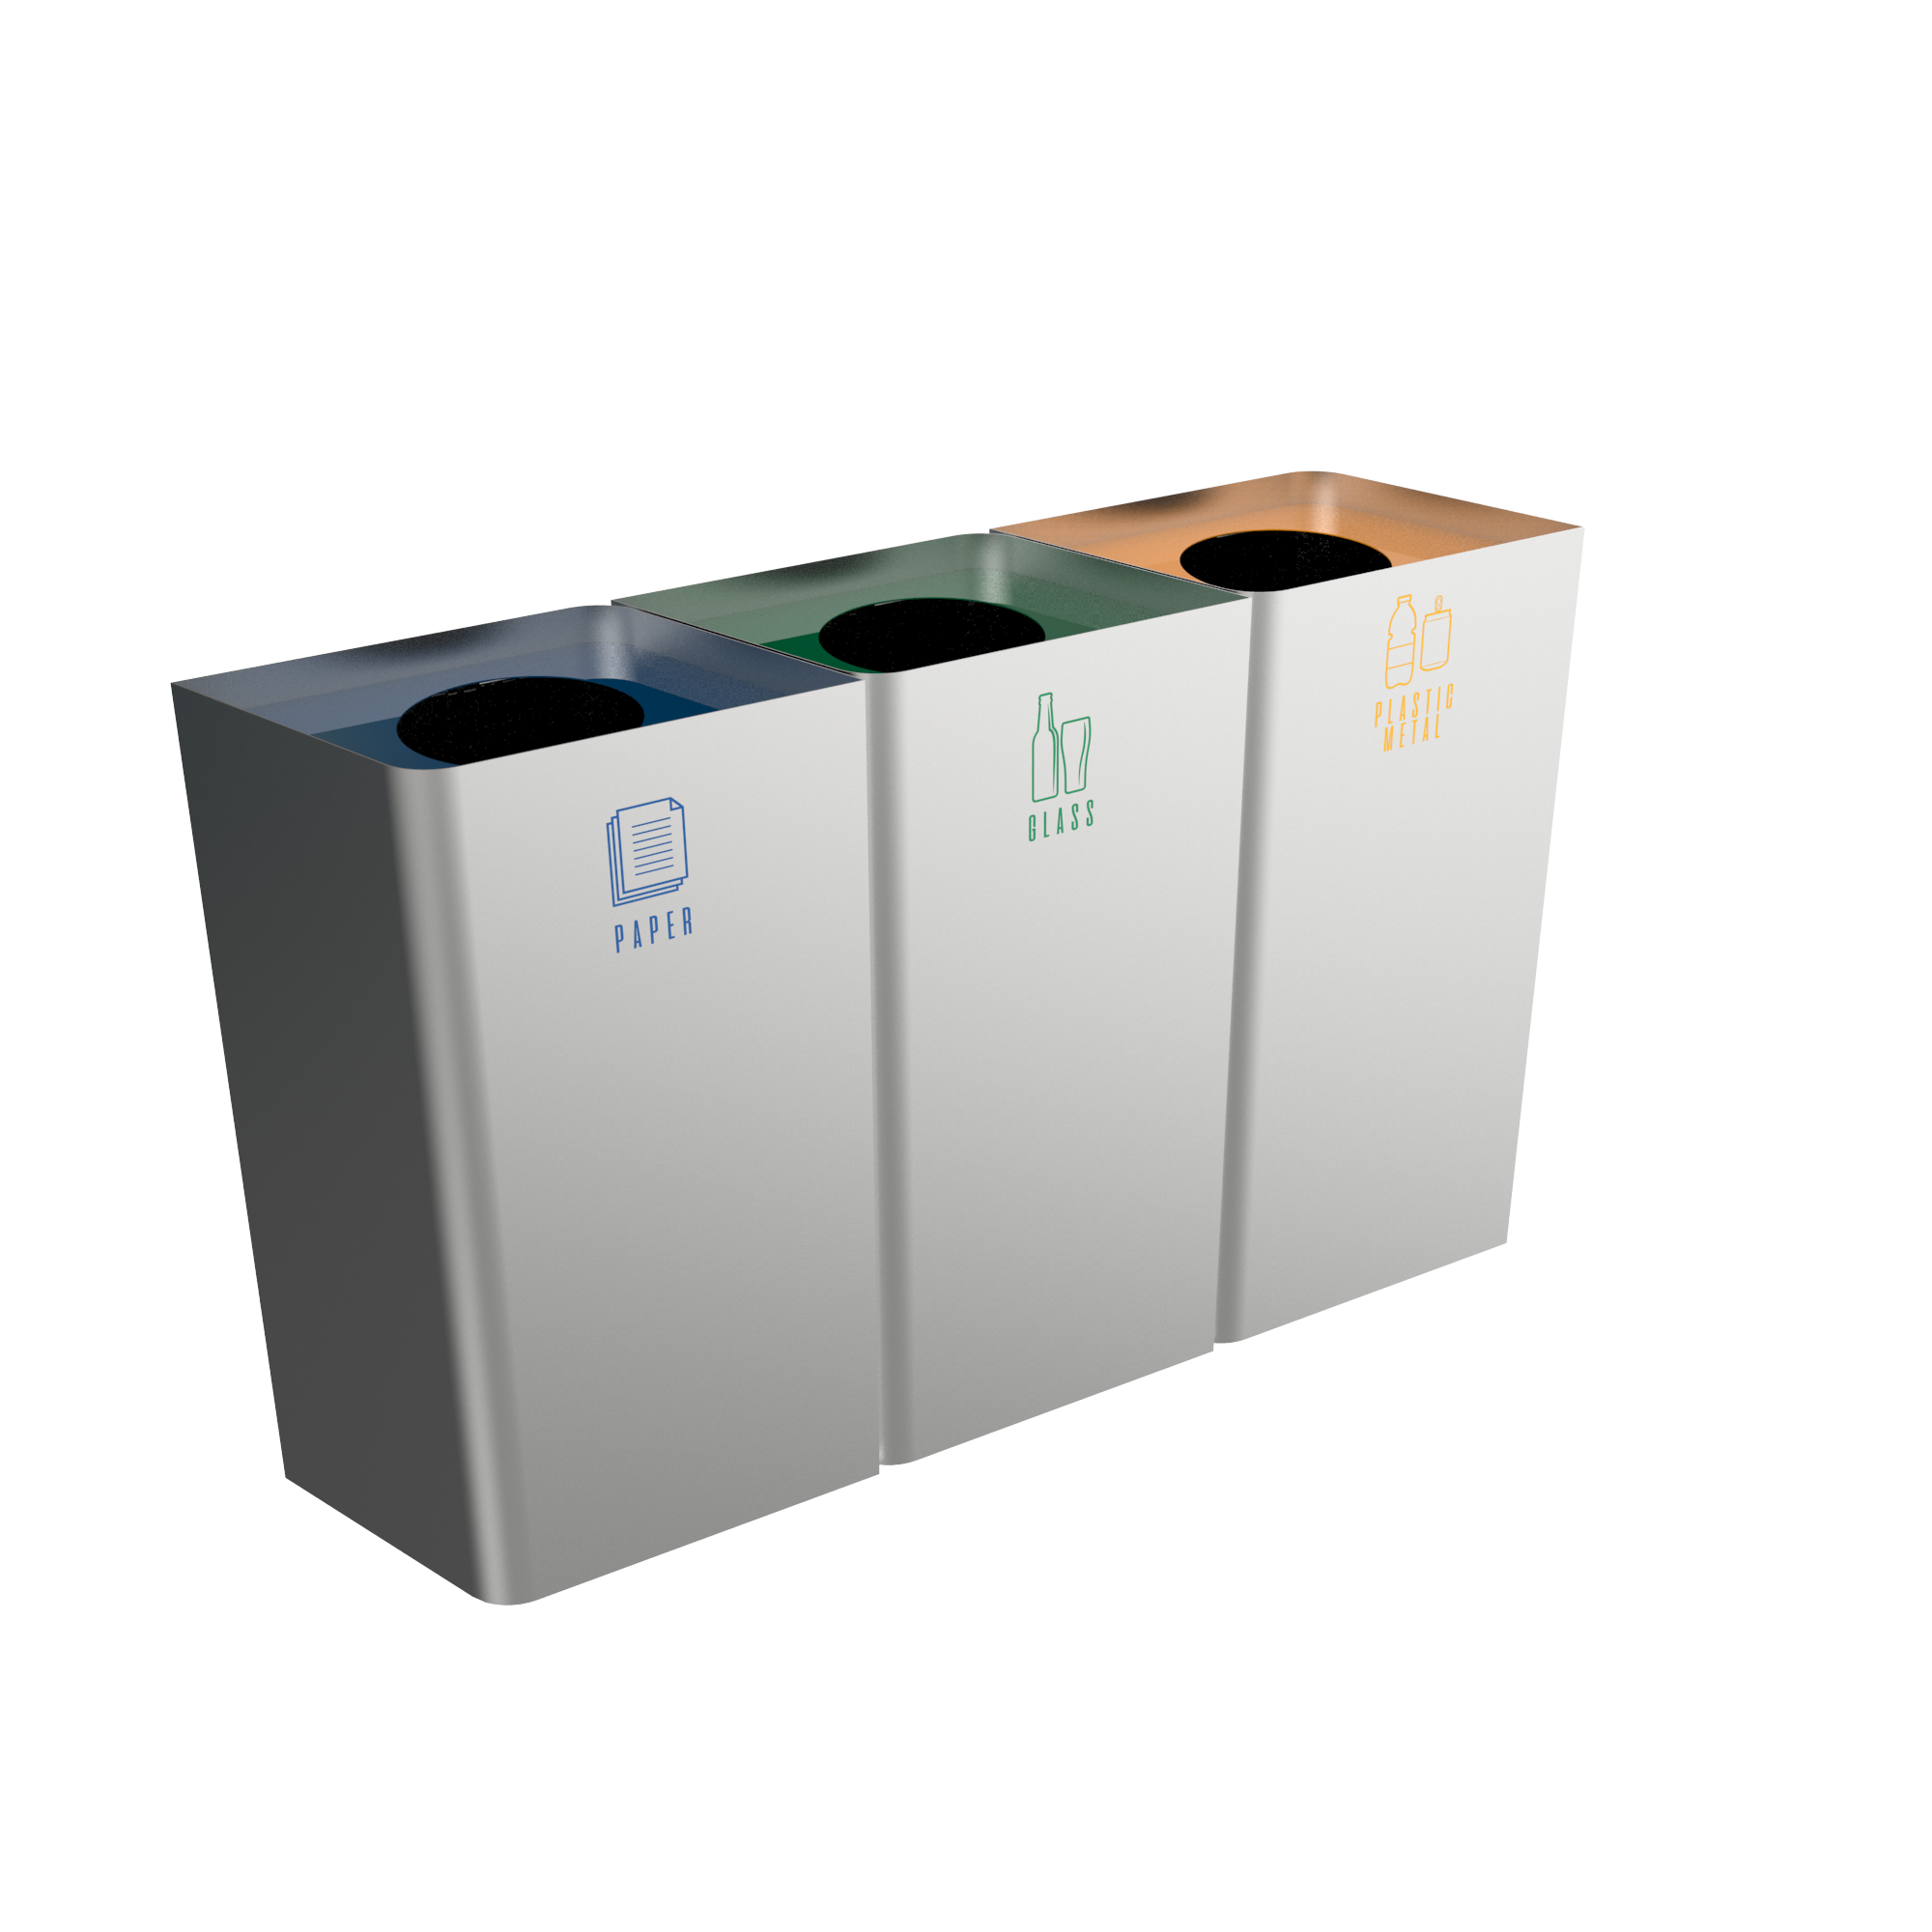 Whitey S Metal Recycling Home: POLLUX SST